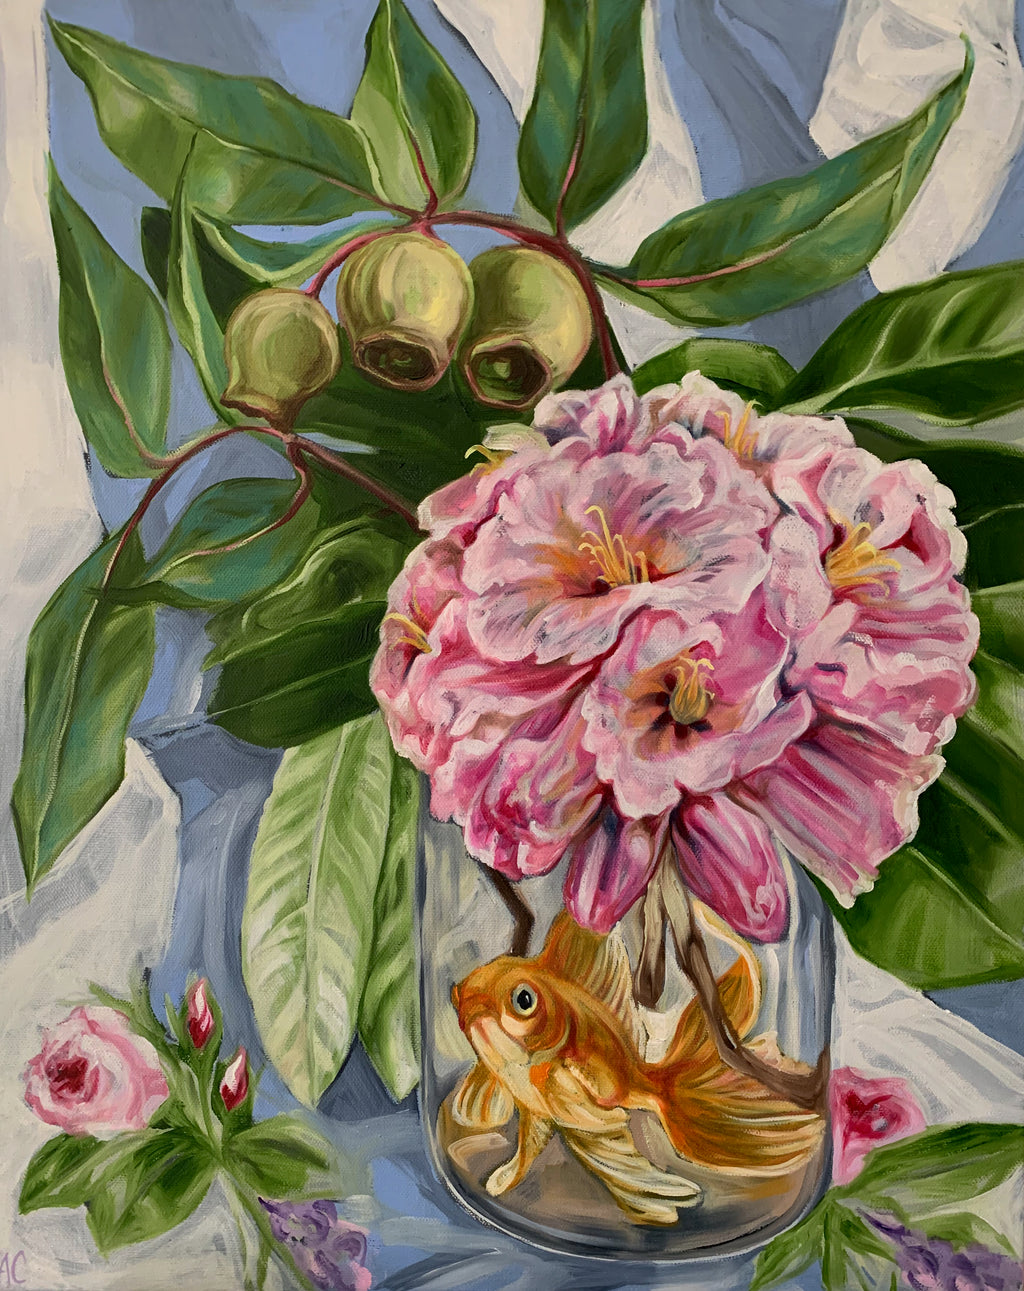 Roses, Rhodo and the Floaty Fish